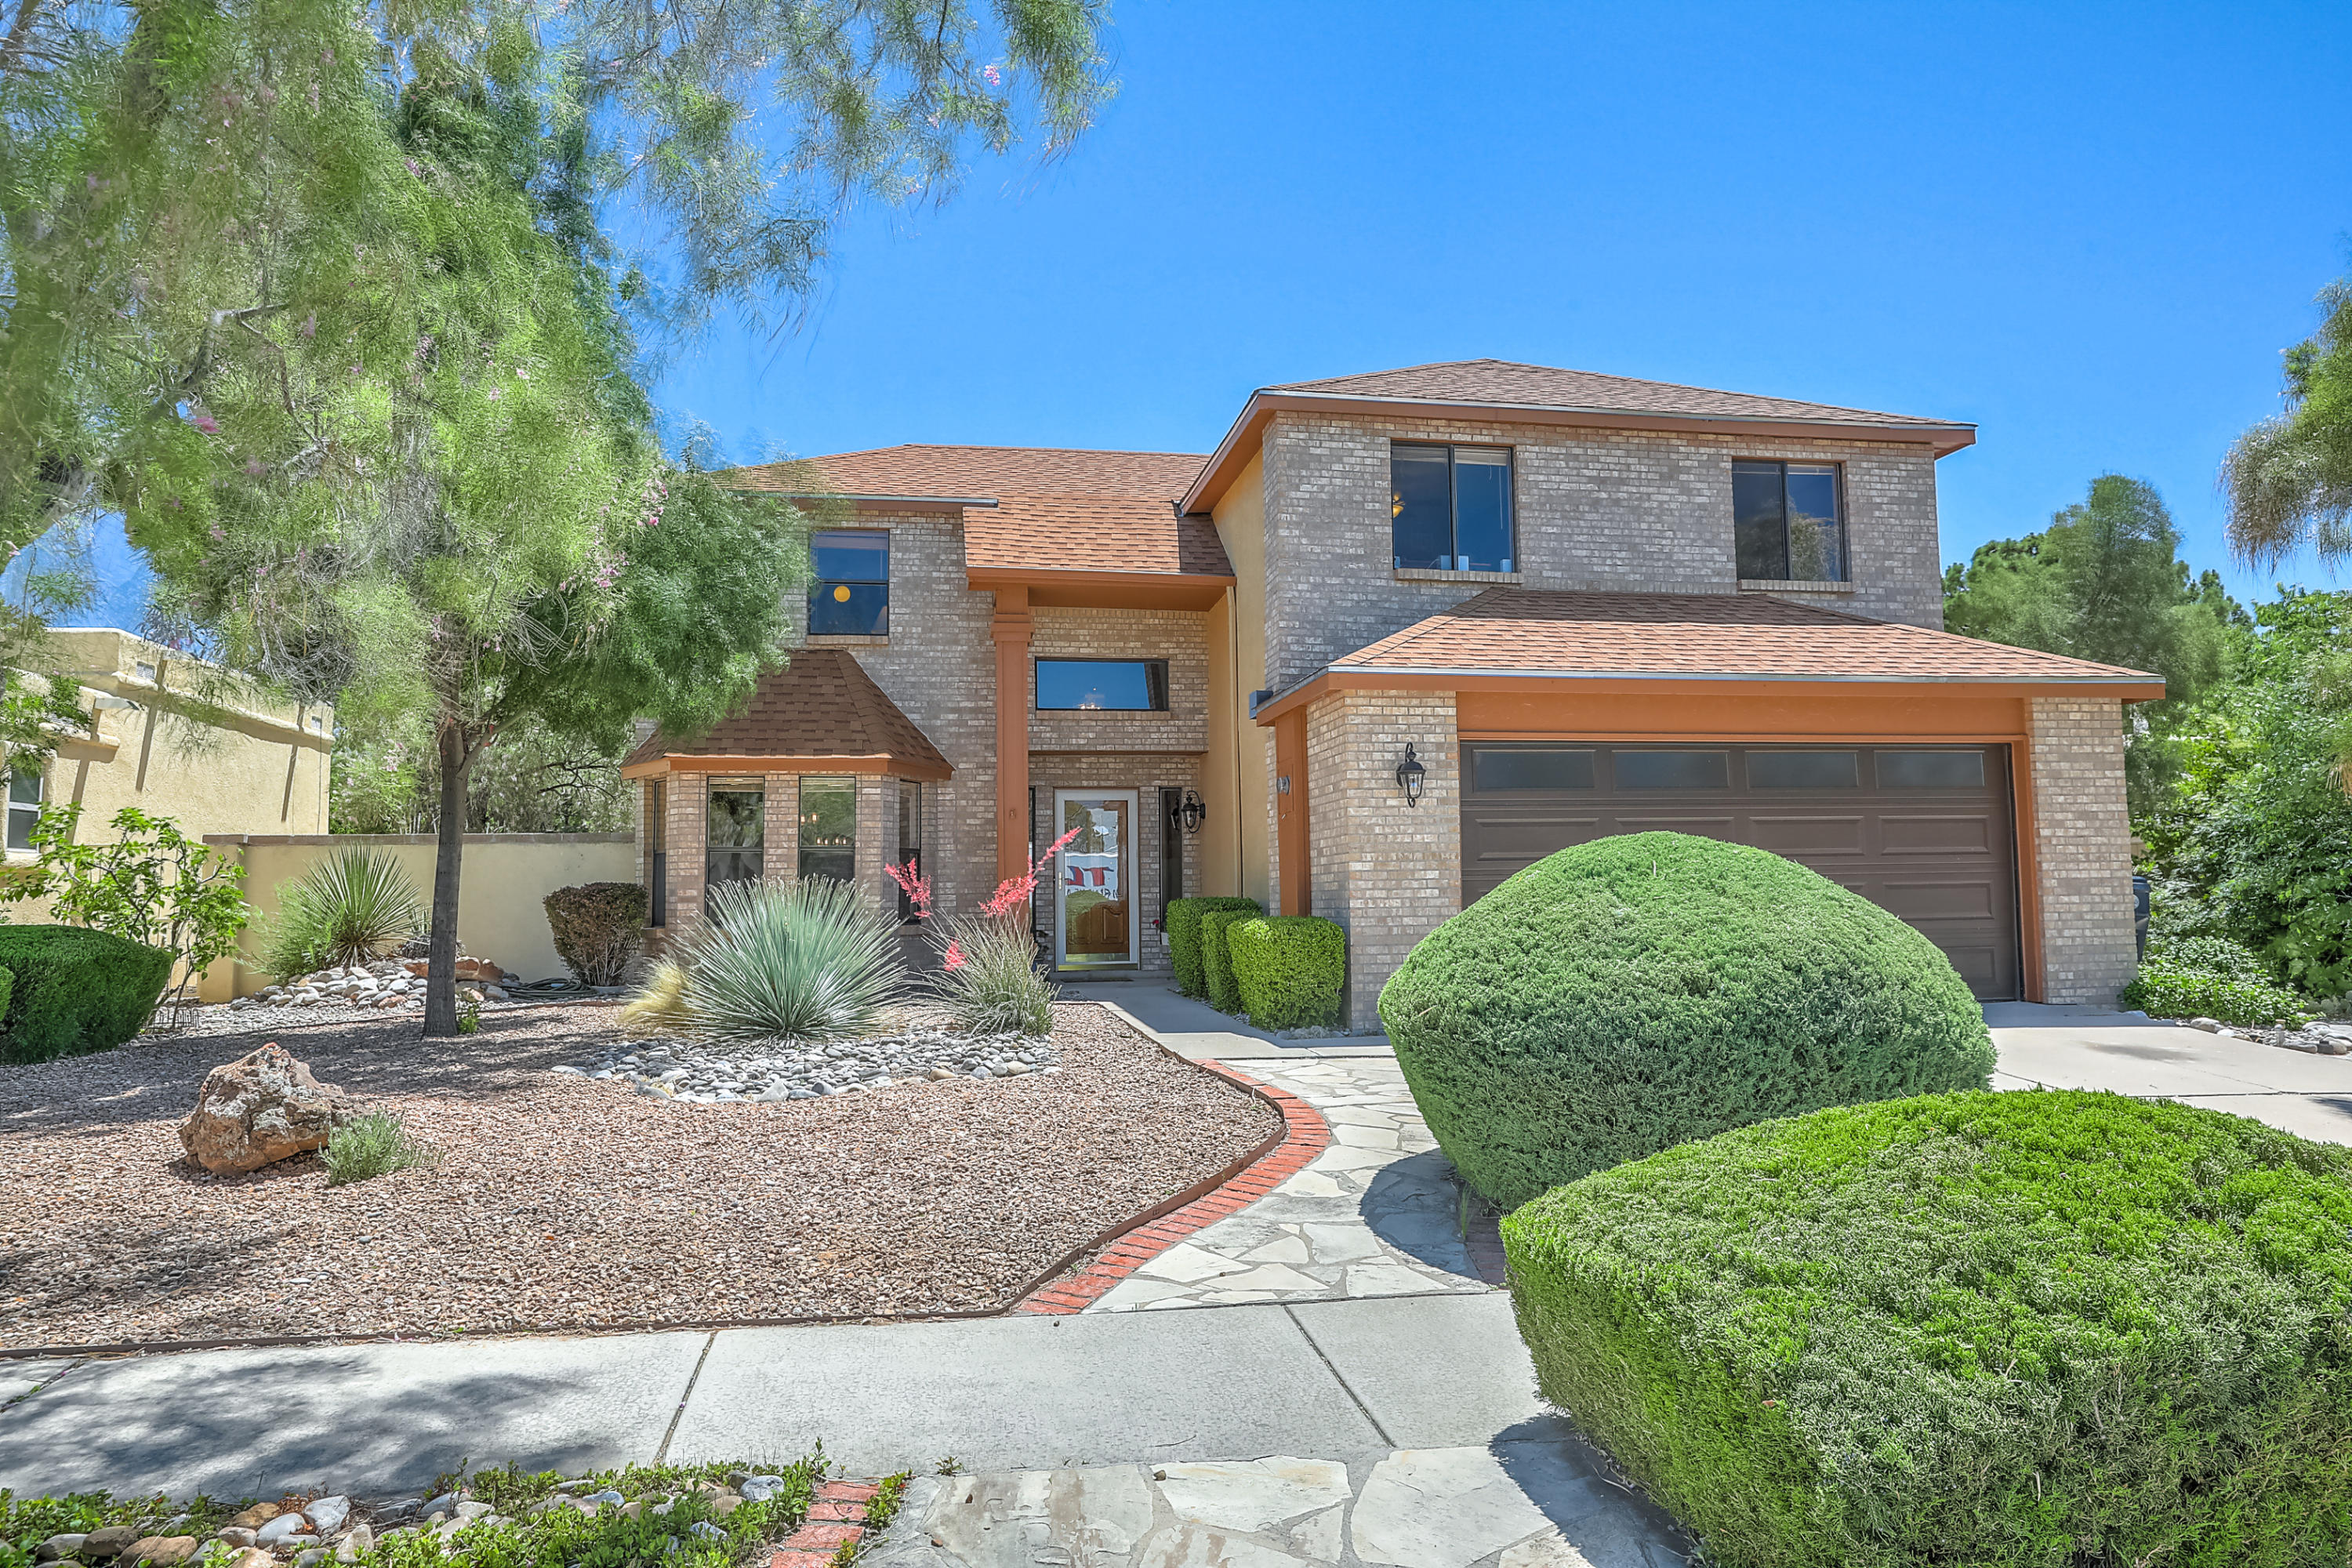 9604 GIDDINGS Avenue NE Property Photo - Albuquerque, NM real estate listing